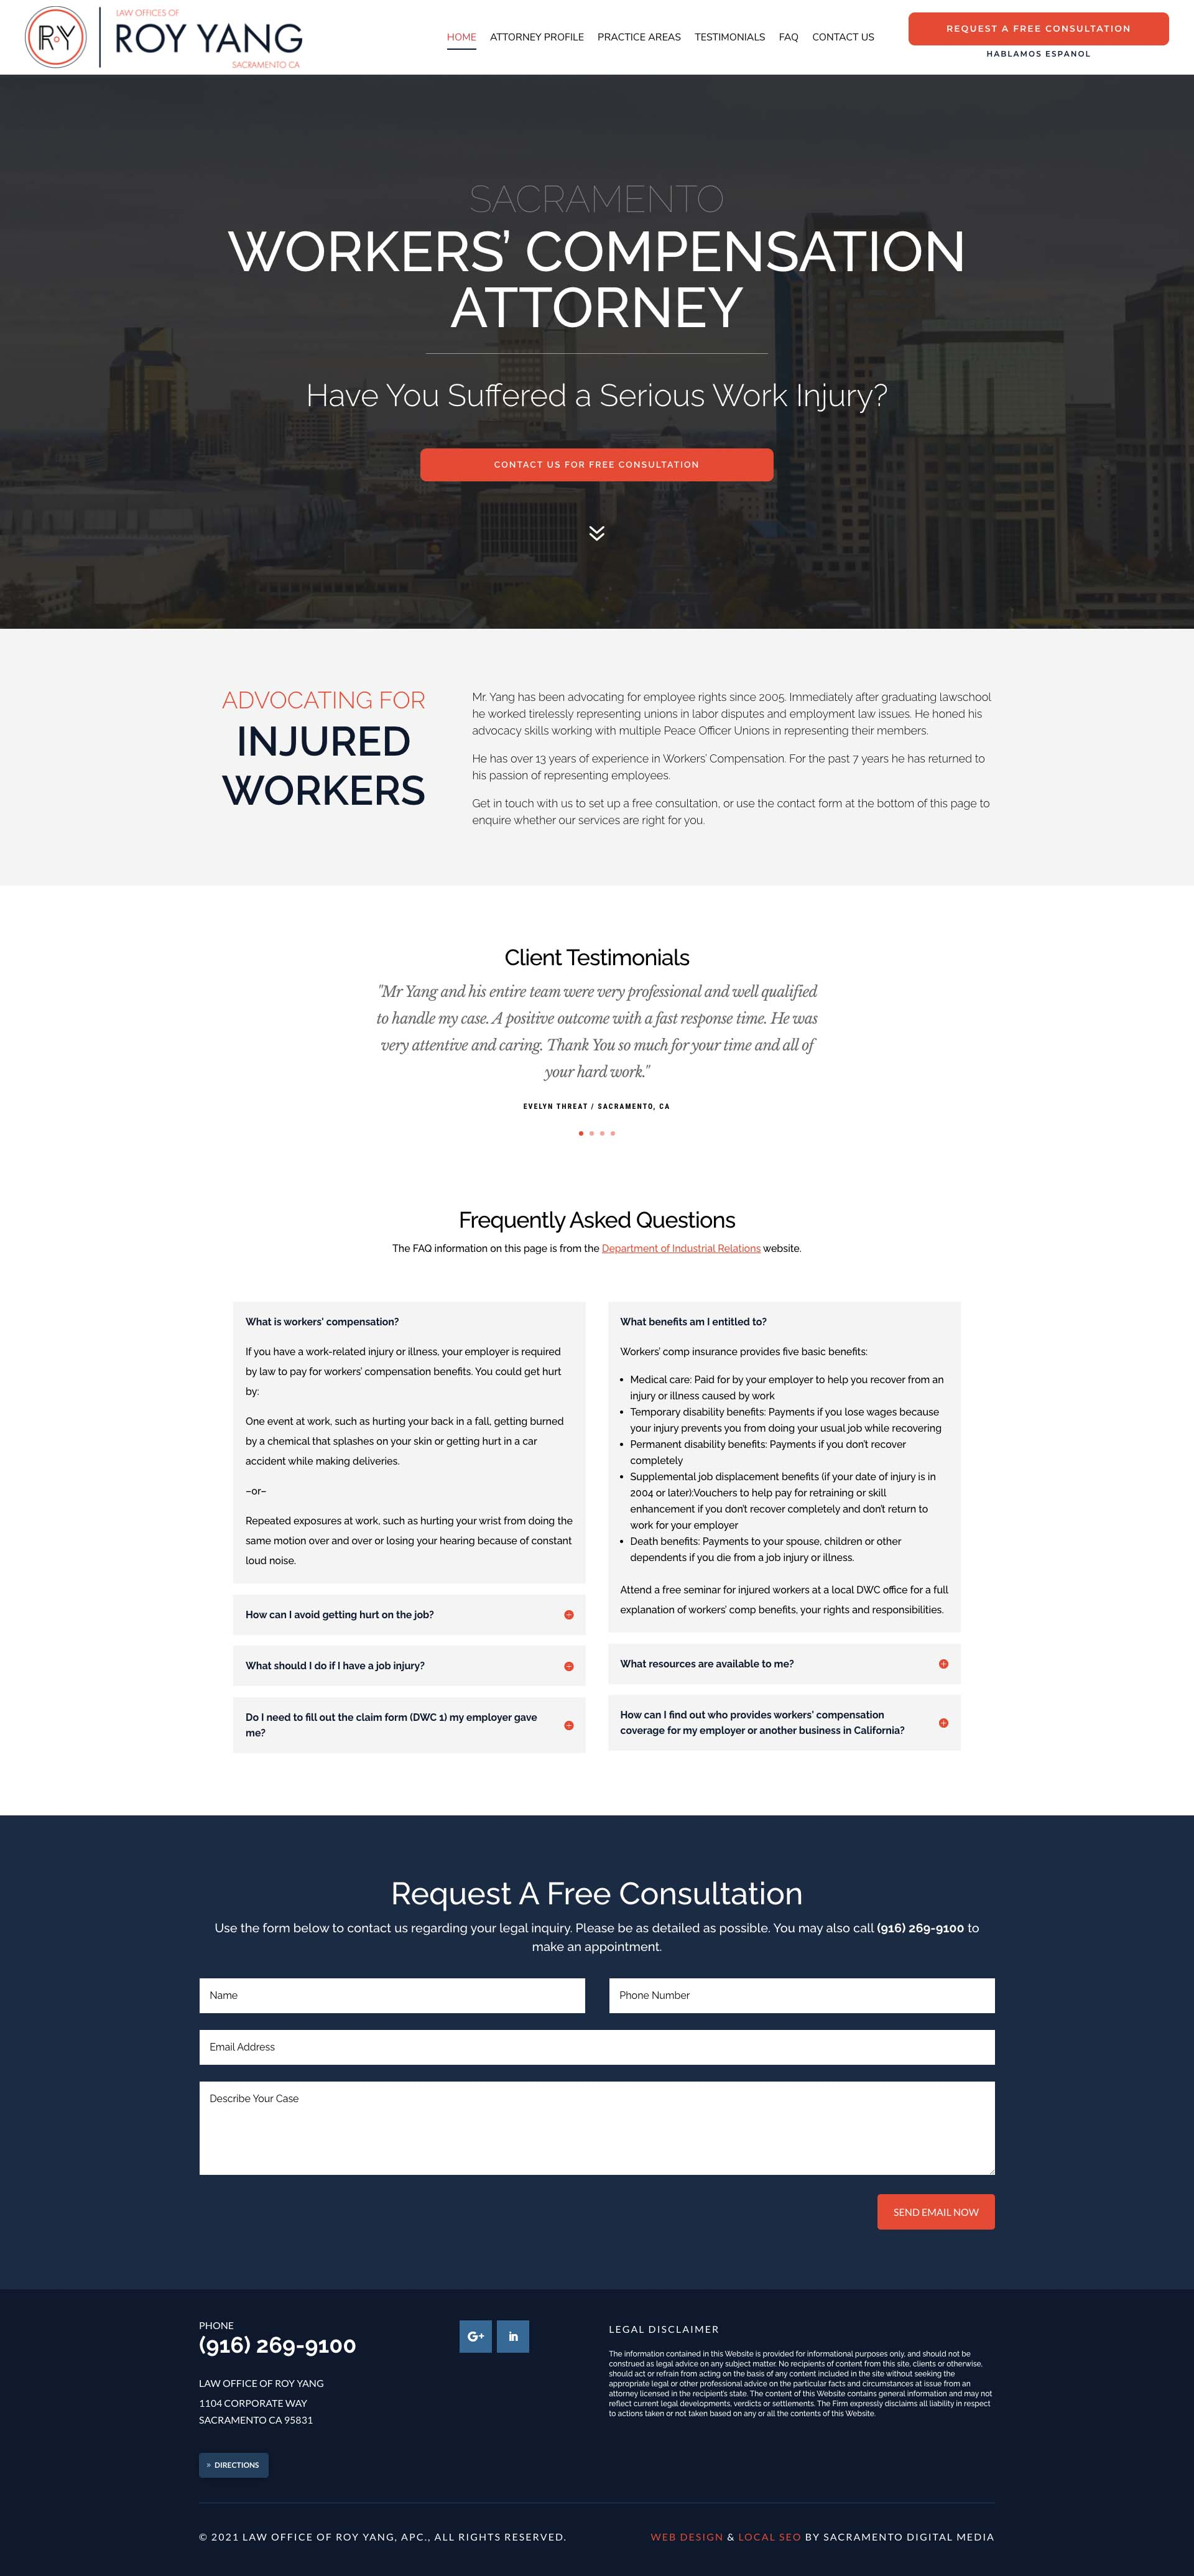 Web Design in Sacramento for the Law Office of Roy Yang